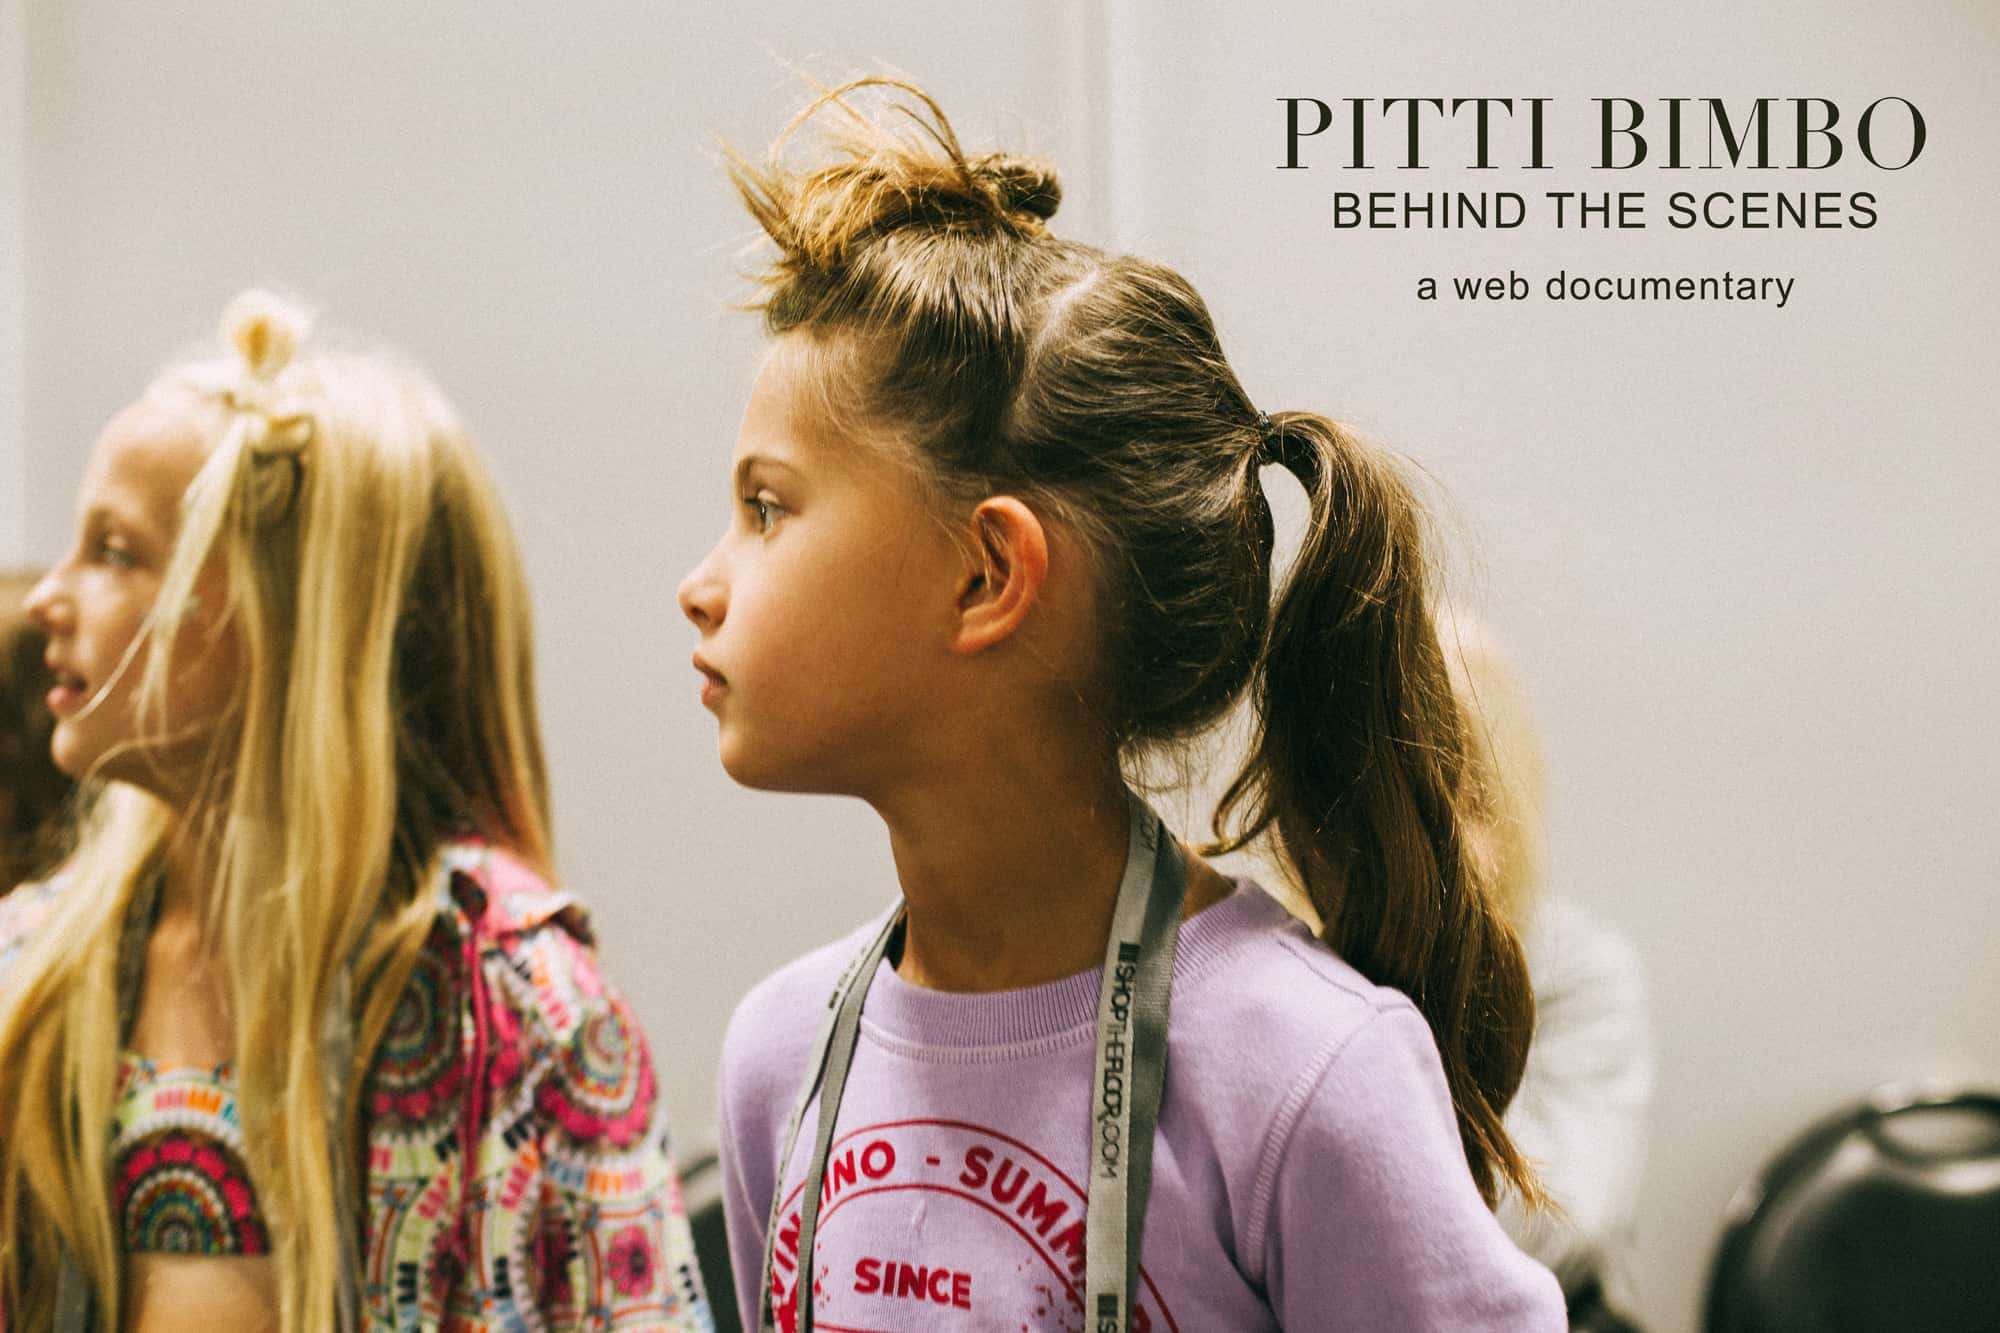 Pitti Bimbo - Behind the scenes web doc by Pirouette